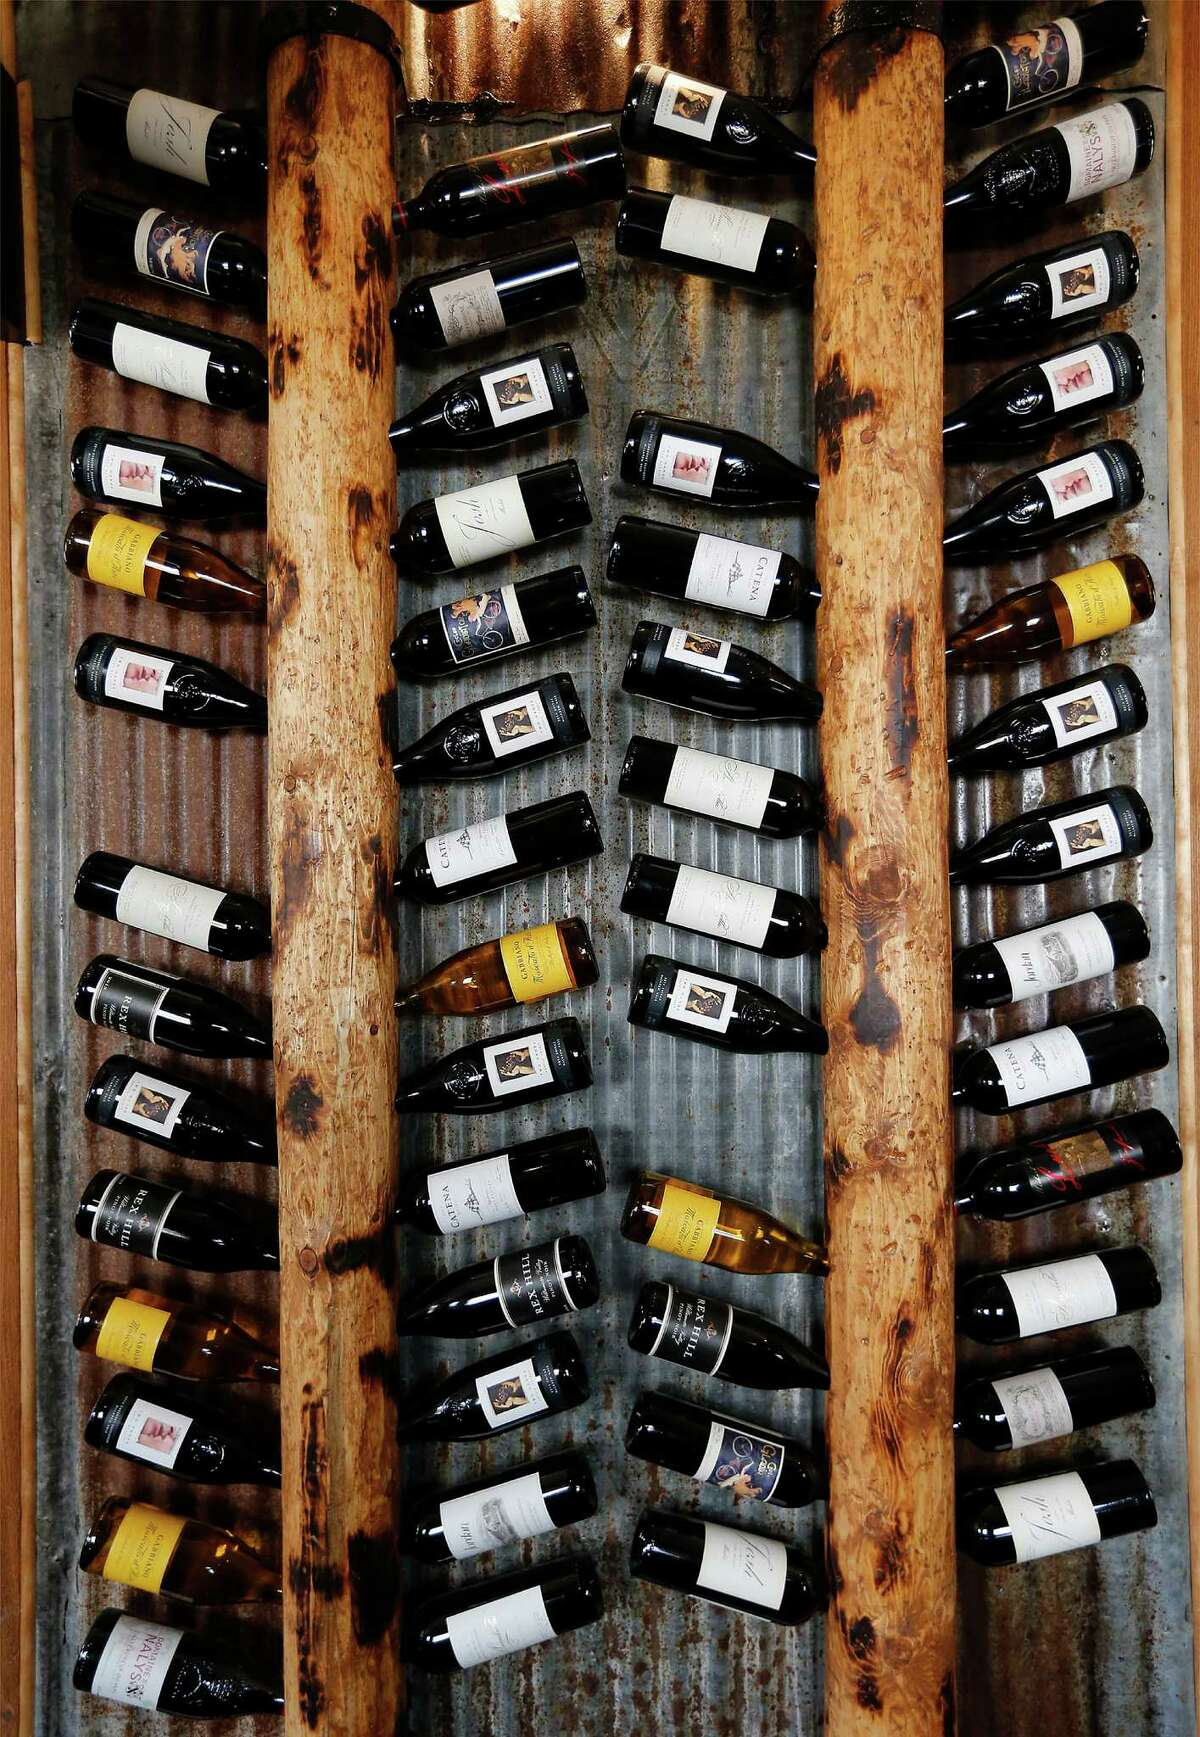 Even the wine bottles are arranged cleverly at Grayze.